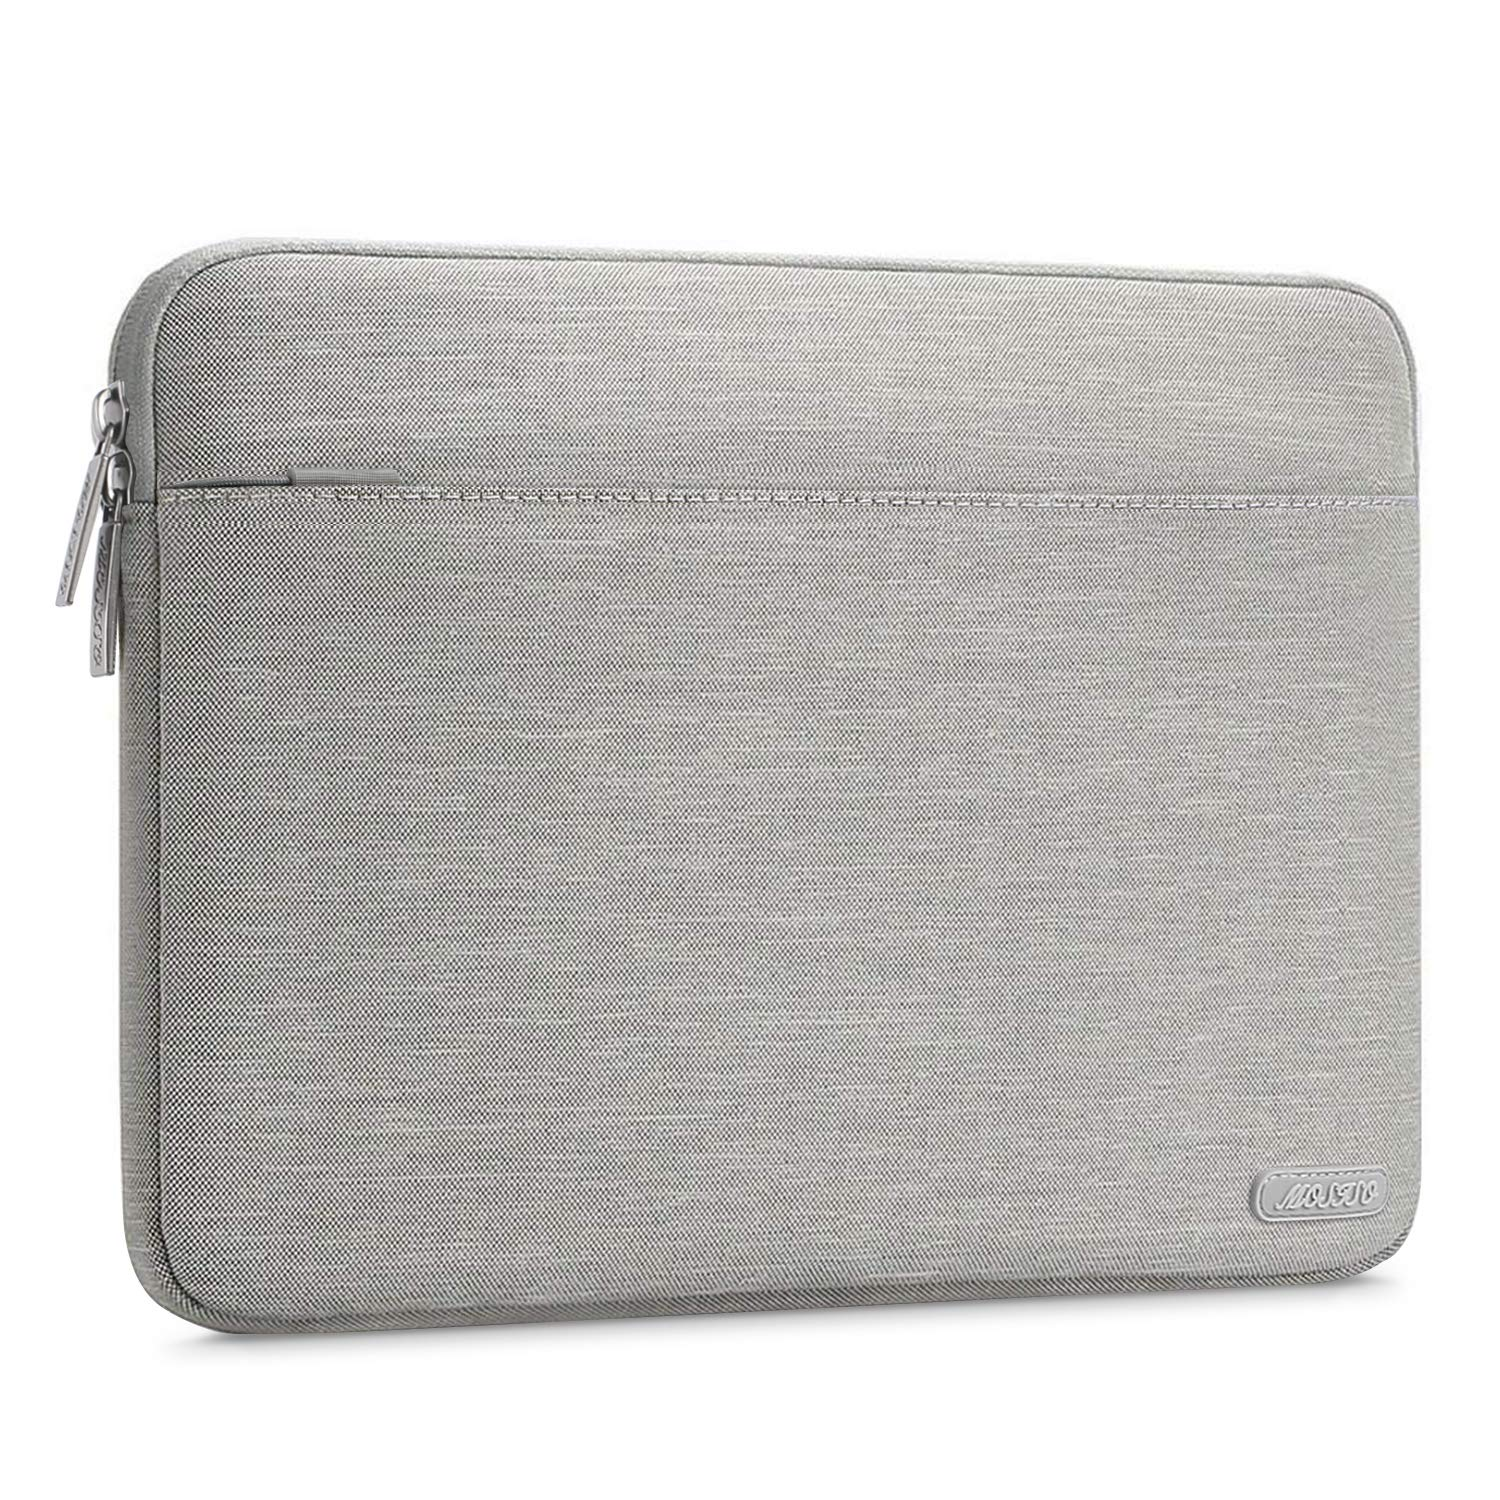 MOSISO Laptop Sleeve Bag Compatible 13-13.3 Inch MacBook Pro, MacBook Air, Notebook Computer, Spill Resistant Polyester Horizontal Protective Carrying Case Cover, Gray